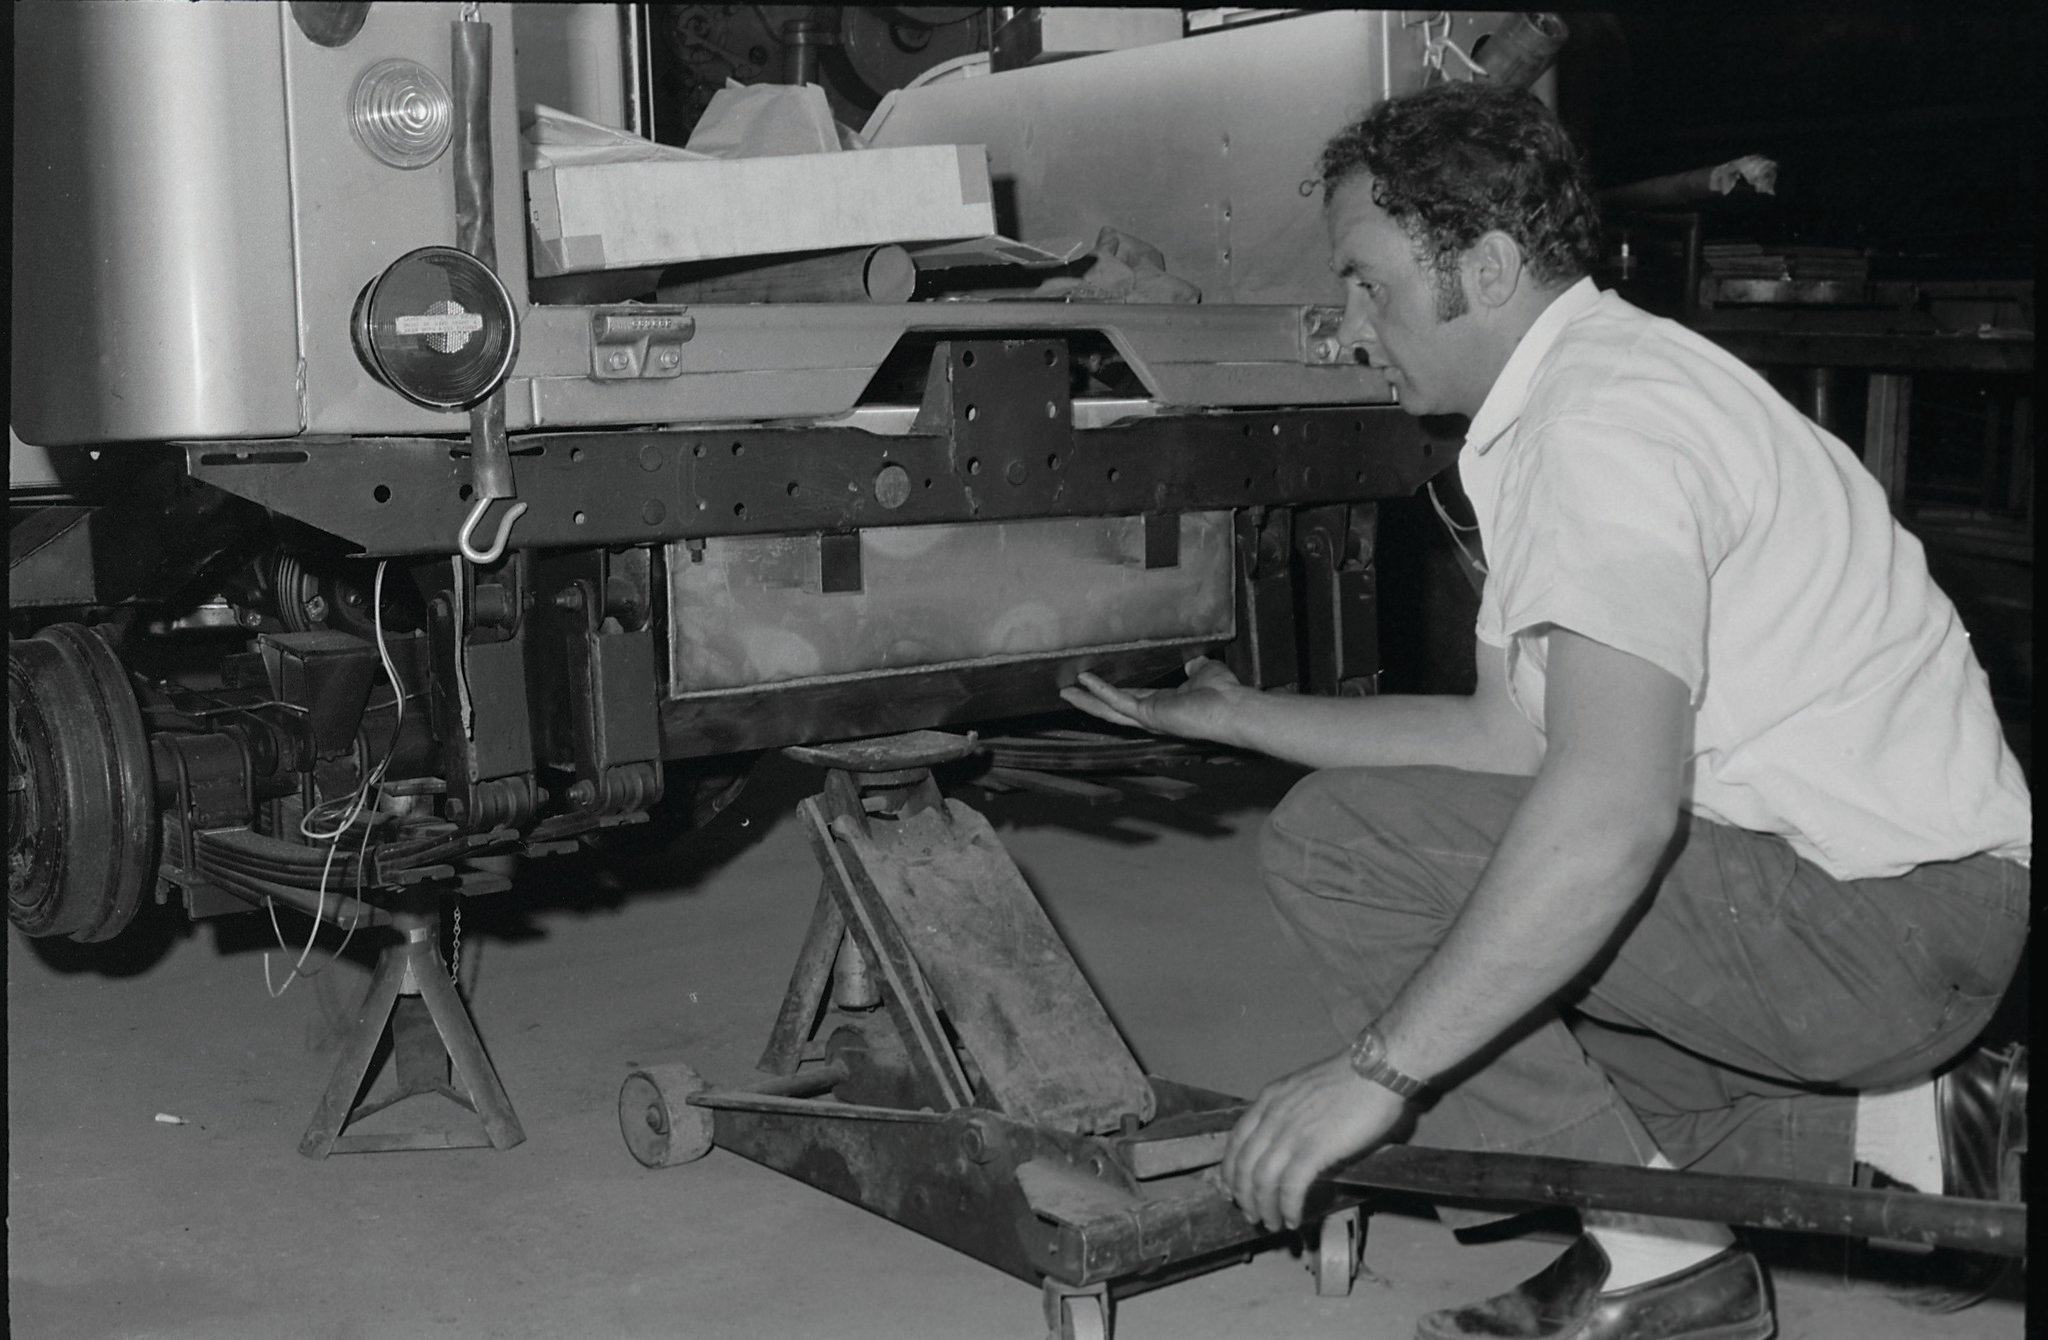 Chuck Atkinson fits the 30-gallon main tank up into frame. Two other tanks ride in the rear body corners.